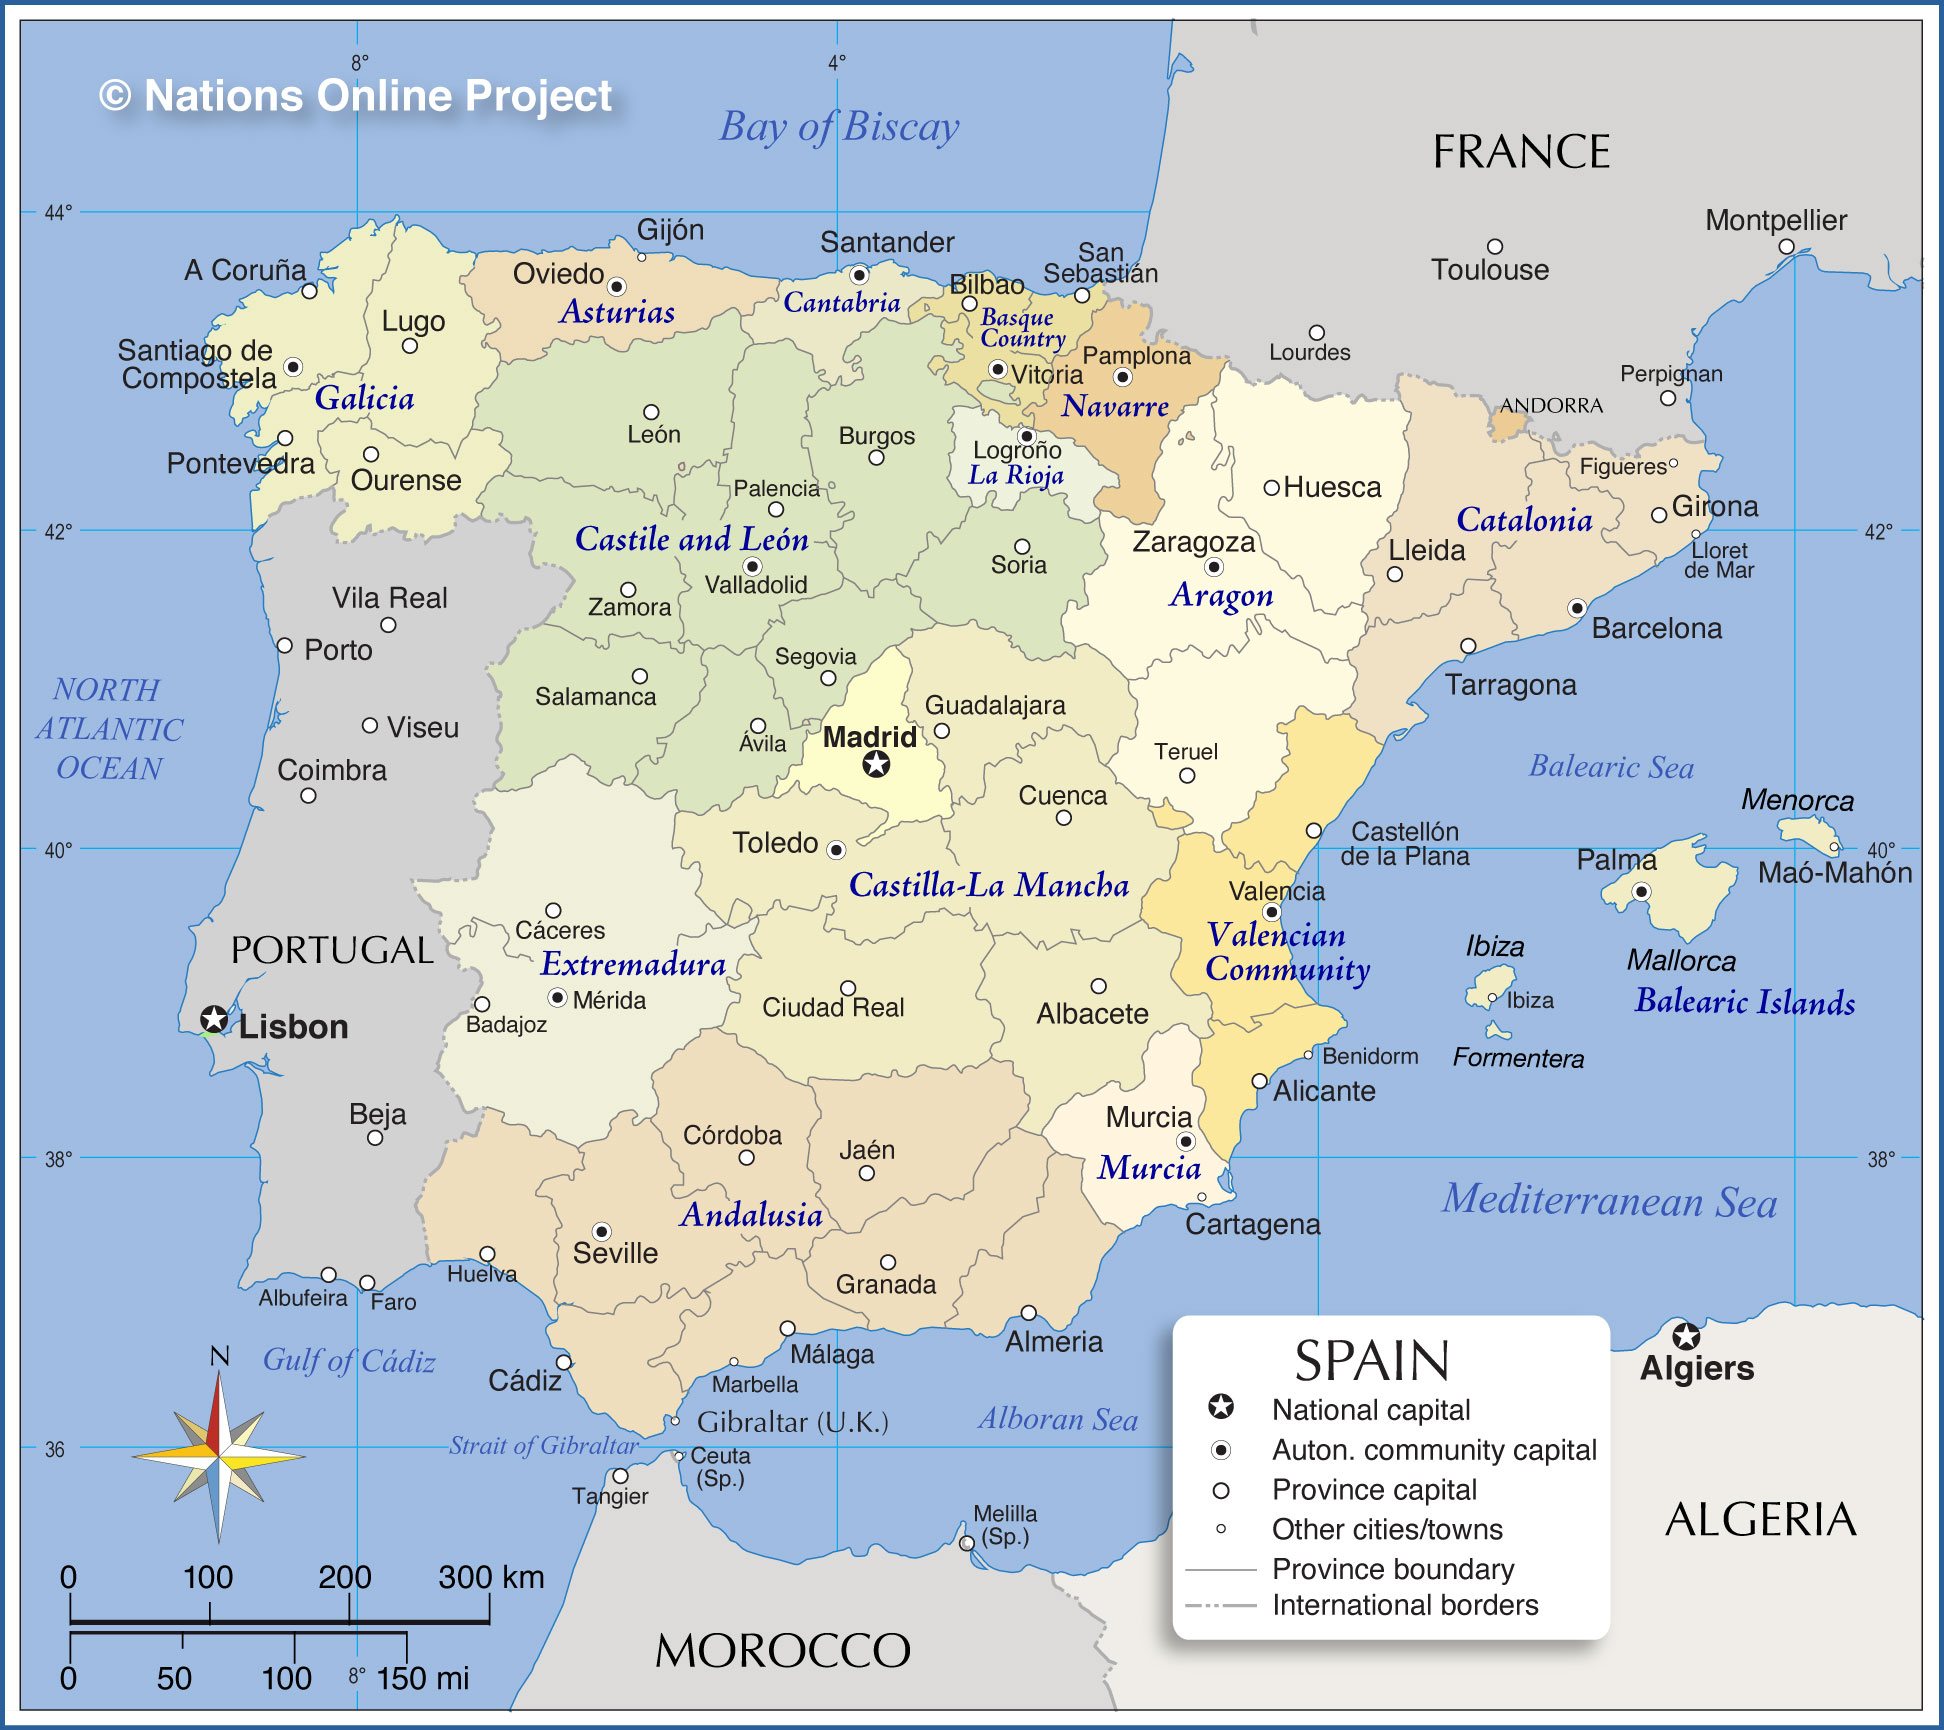 Administrative Map of Spain - Nations Online Project on bay of biscay map, viceroyalty of peru map, duchy of burgundy map, castile europe map, republic of florence map, united kingdom on world map, republic of venice map, duchy of brittany map, kingdom of castile in spain, republic of genoa map, kingdom of denmark map, kingdom of burgundy map,